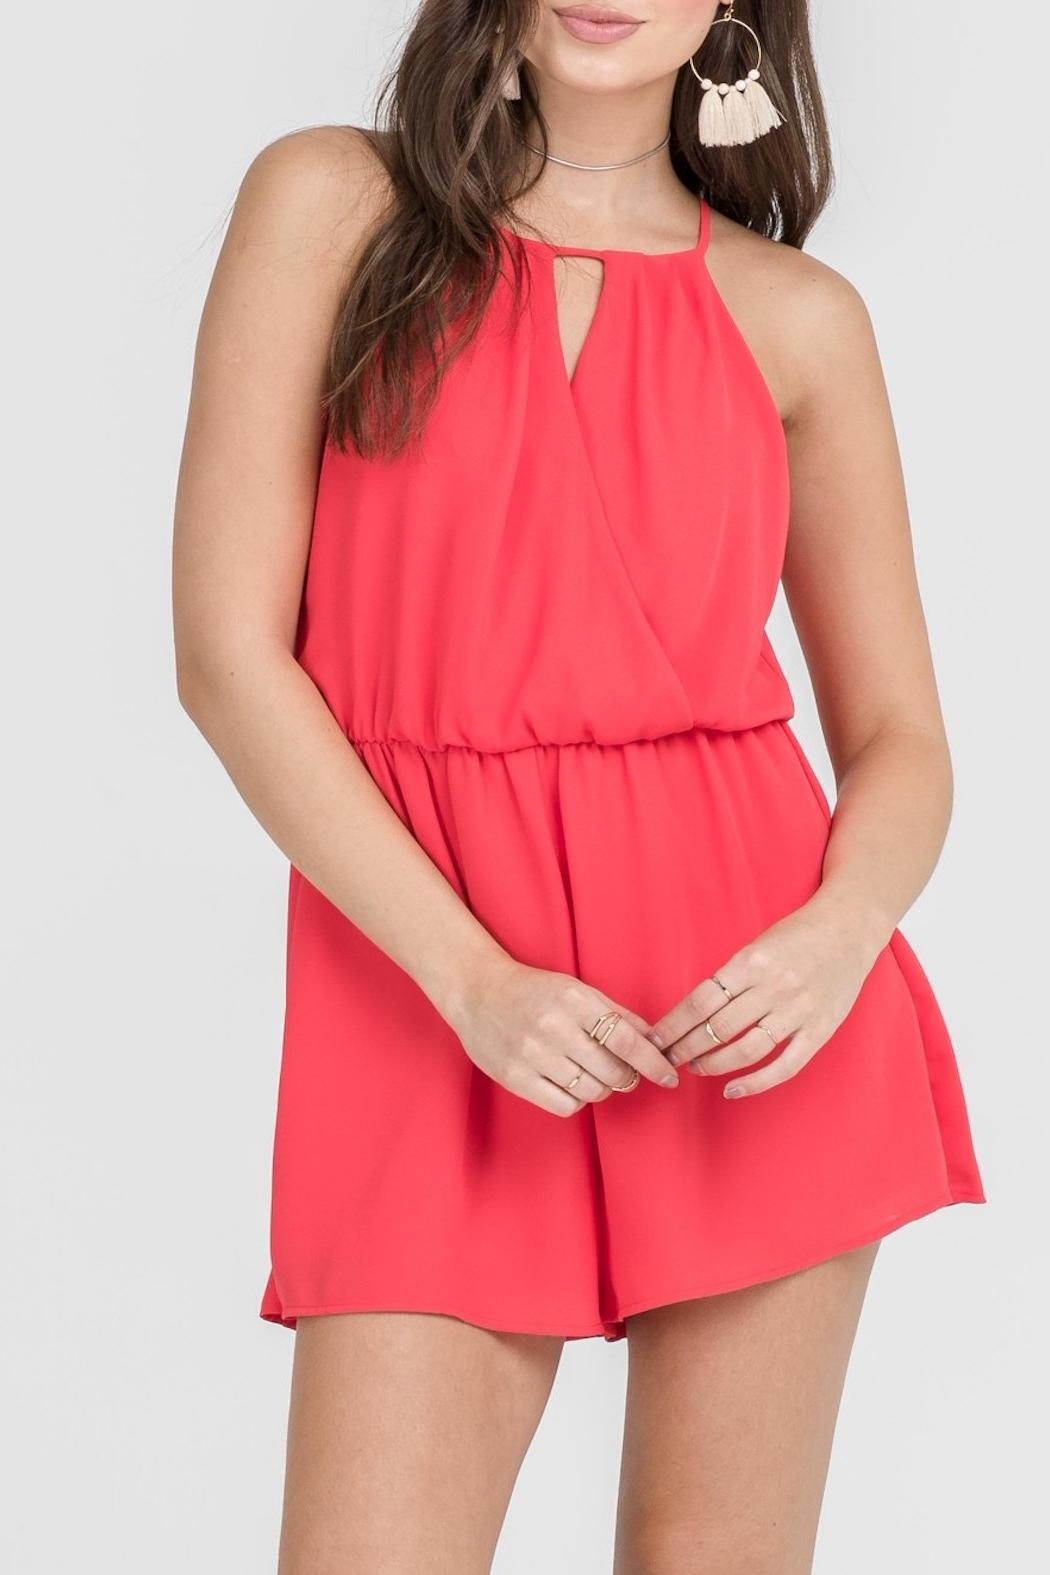 Apricot Lane Tomato Red Romper - Main Image